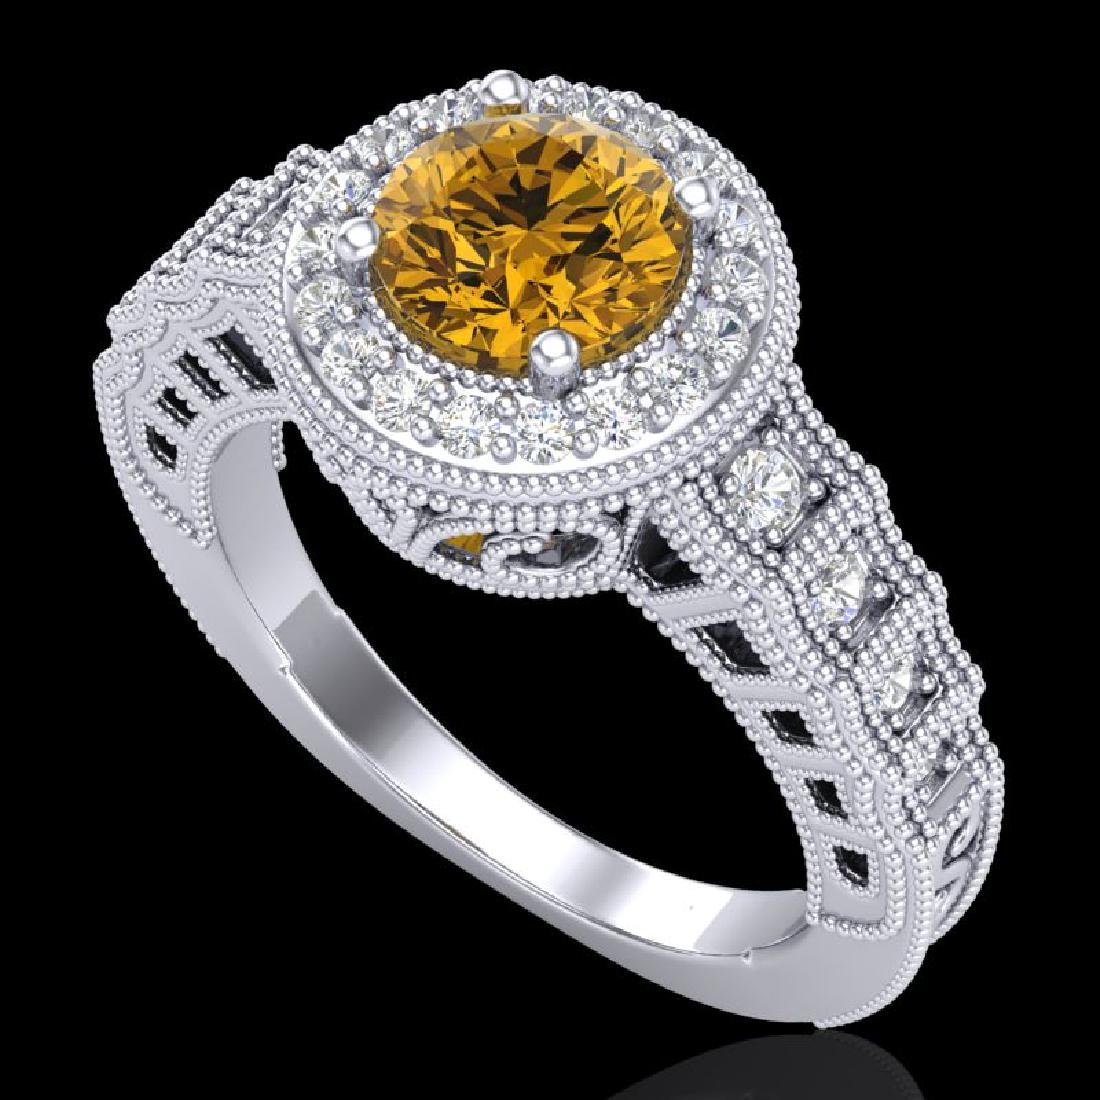 1.53 CTW Intense Fancy Yellow Diamond Engagement Art